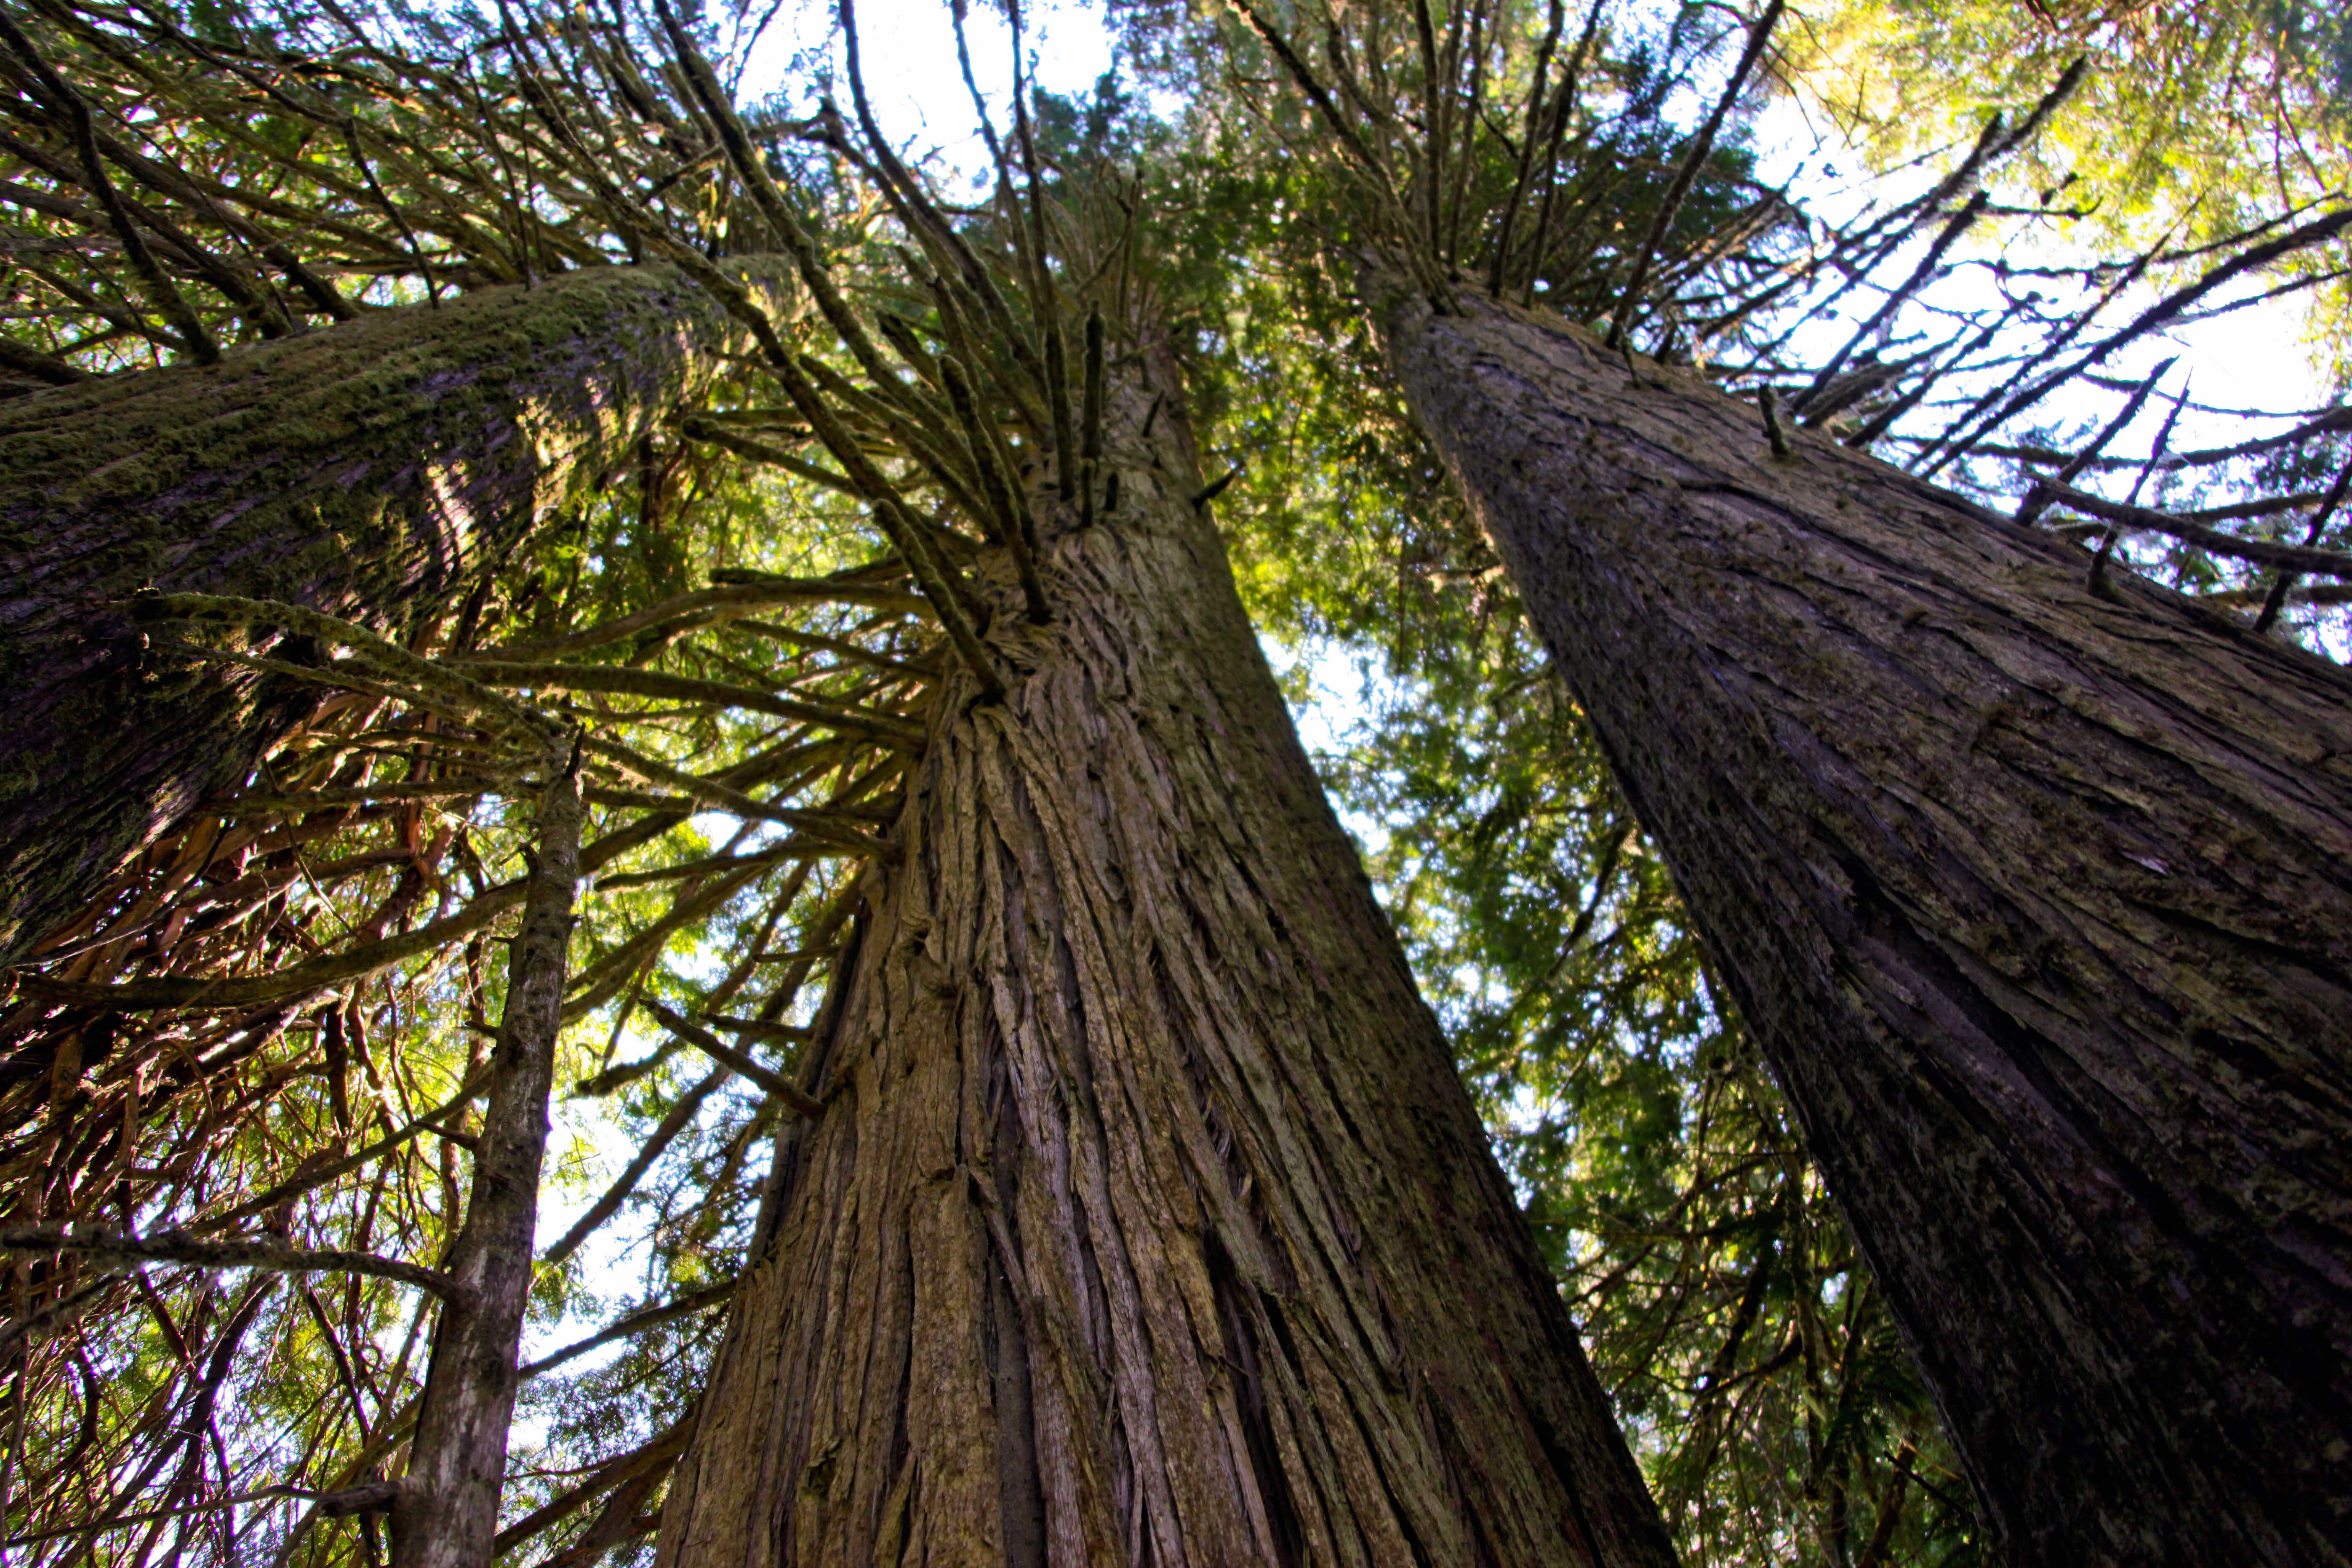 Pictures of cedar trees - Large Cedar Trees Grove Of Patriarchs Mt Rainier Lower Res July 9 2012